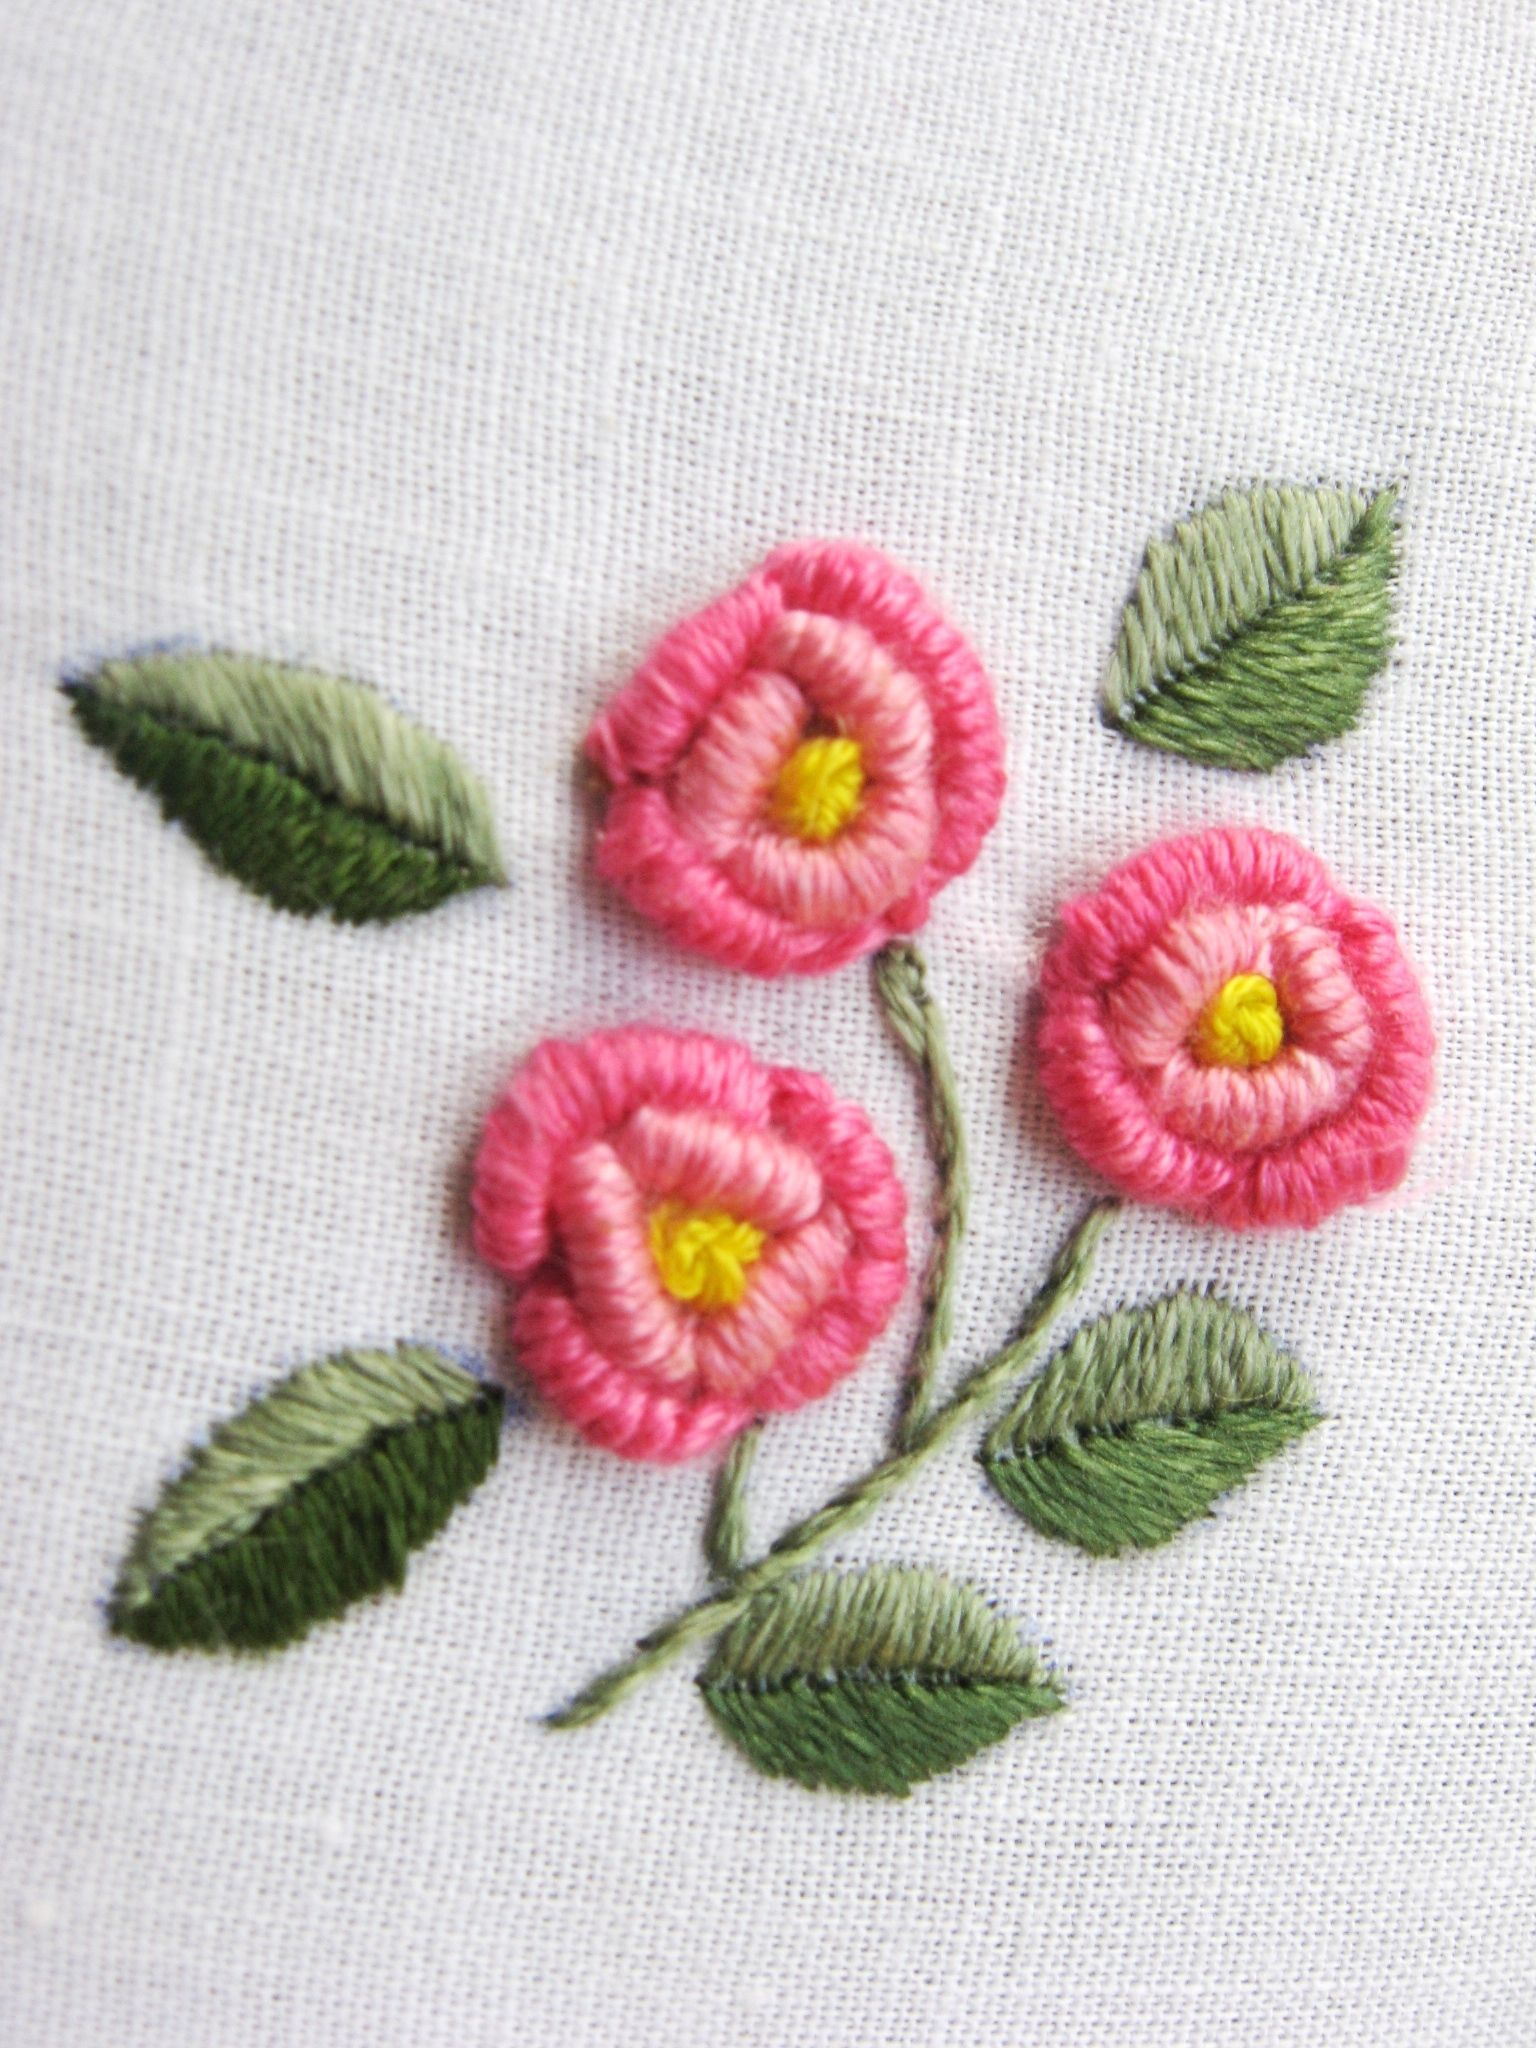 Embroidery flowers google search embroiary pinterest